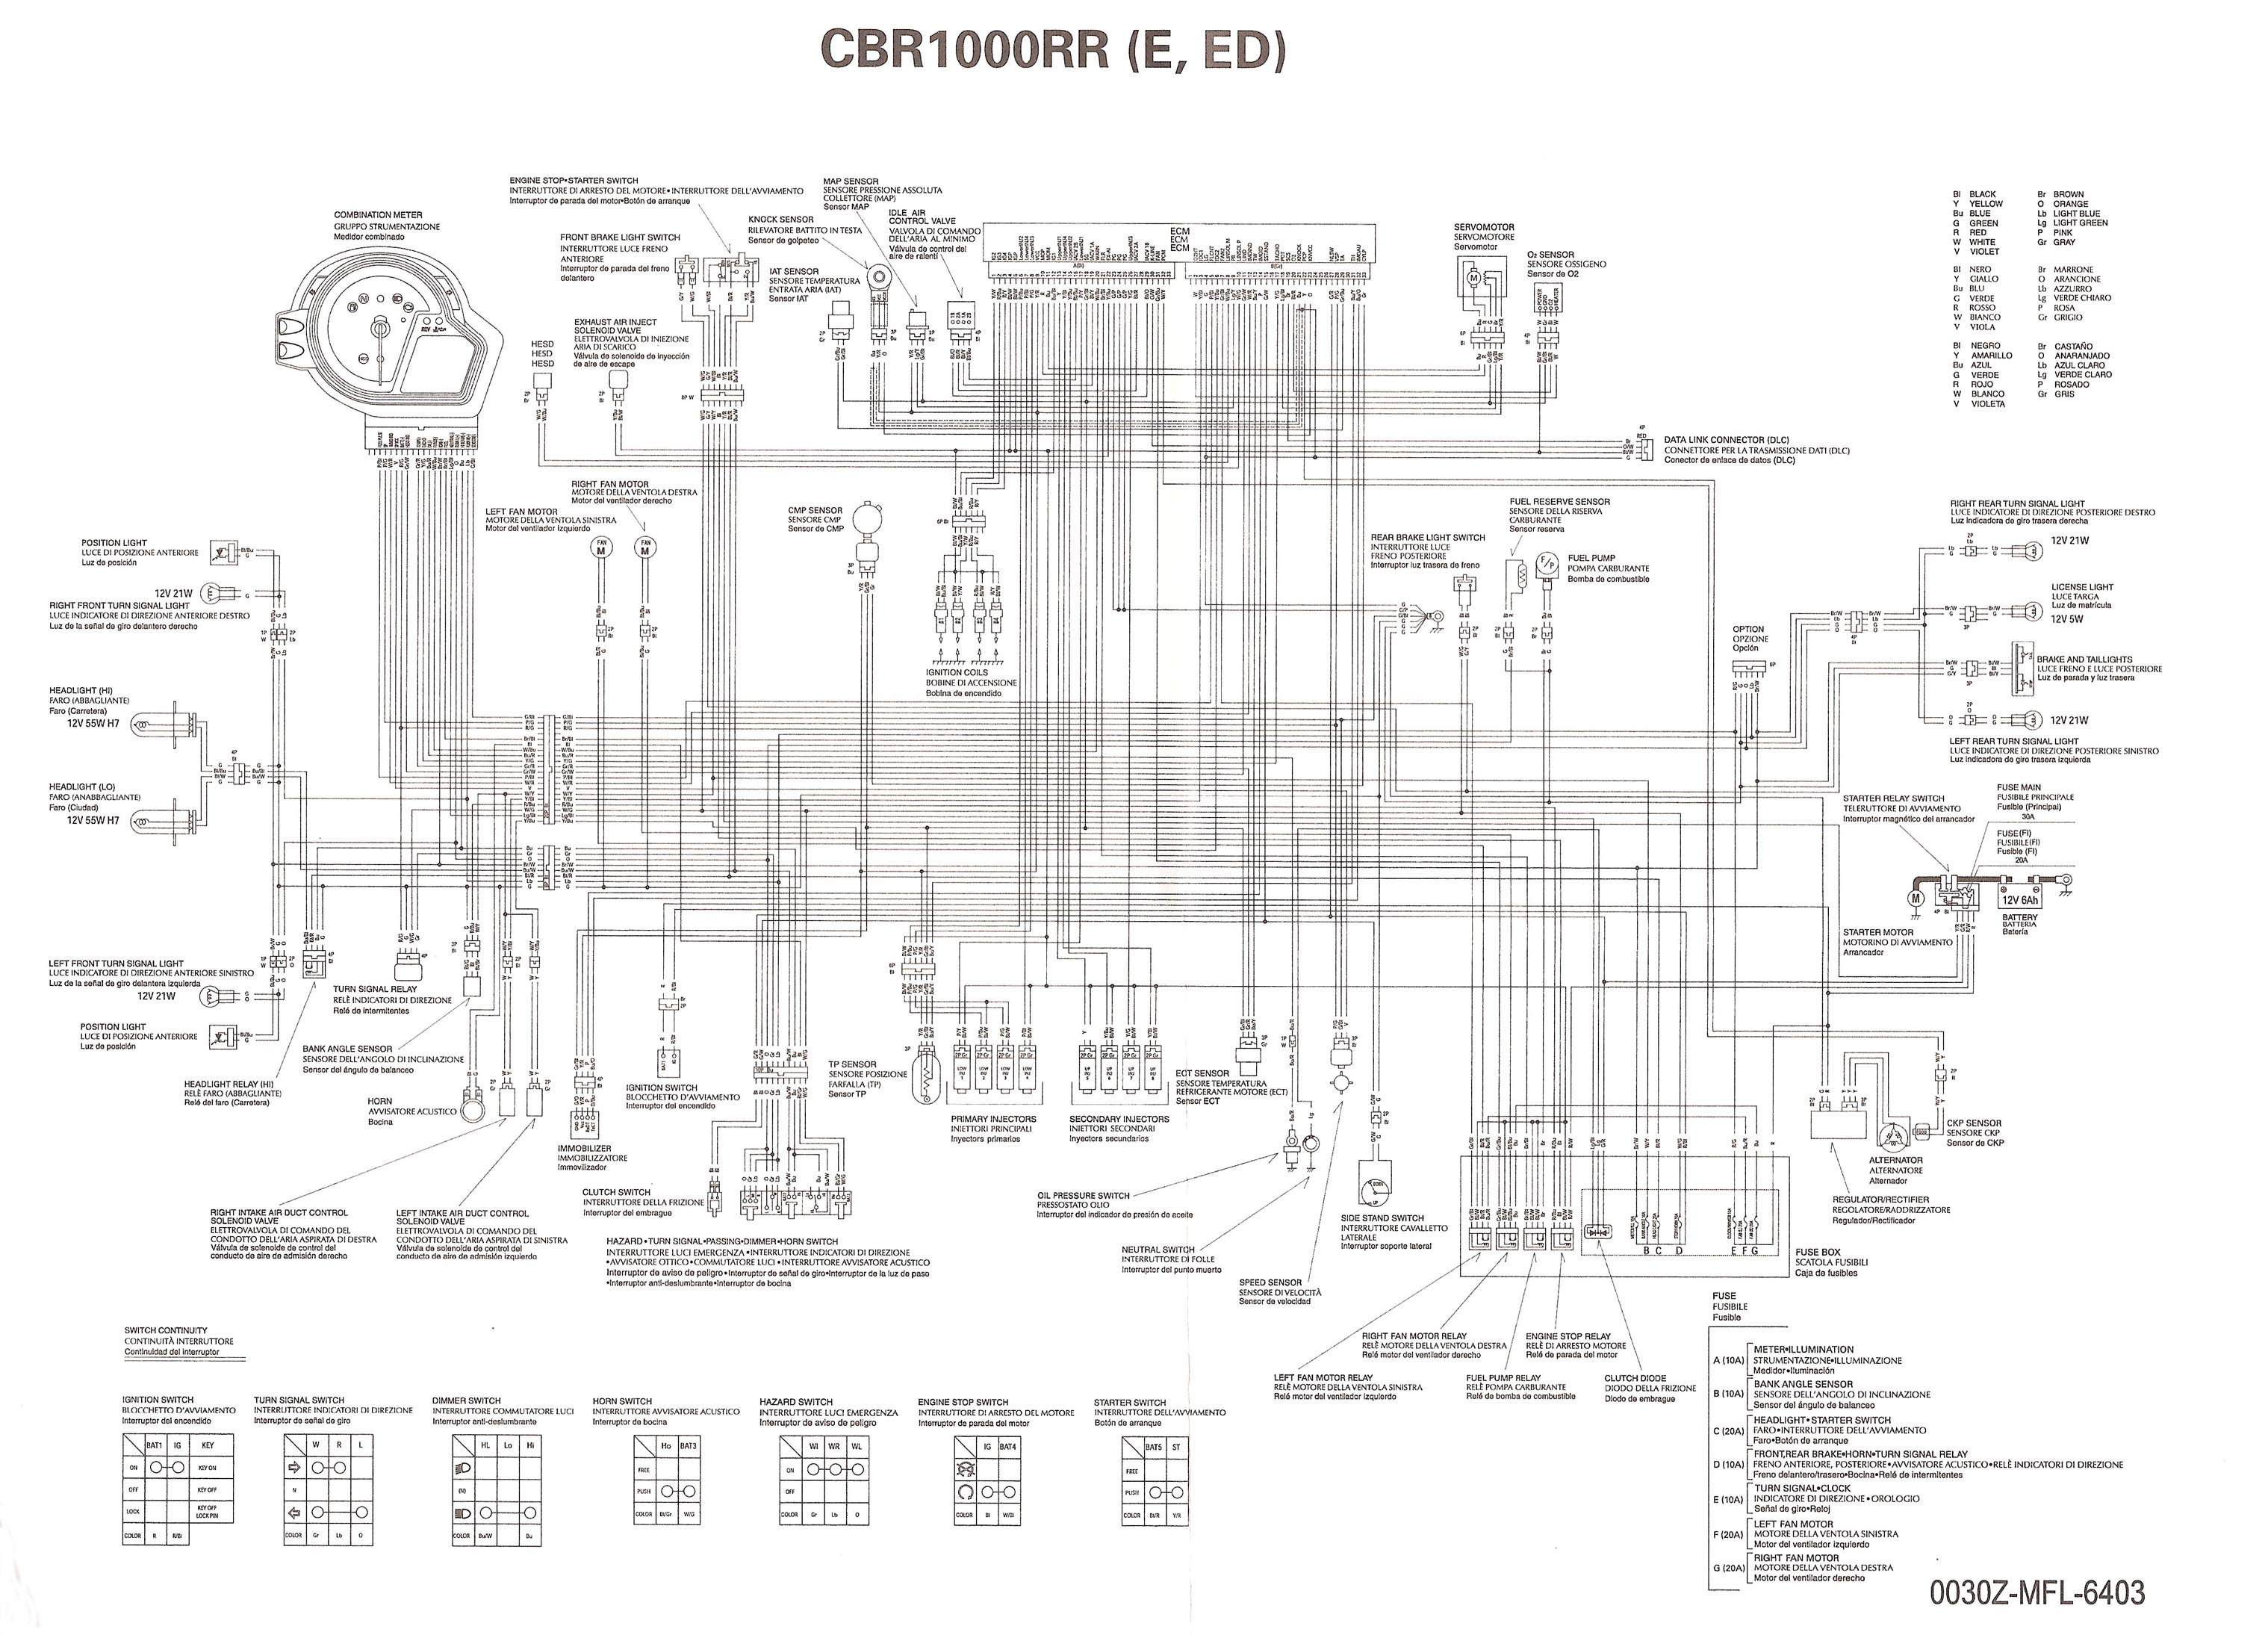 medium resolution of 2000 jeep cherokee fuel pump wiring diagram together with 2007 chrysler sebring fuse